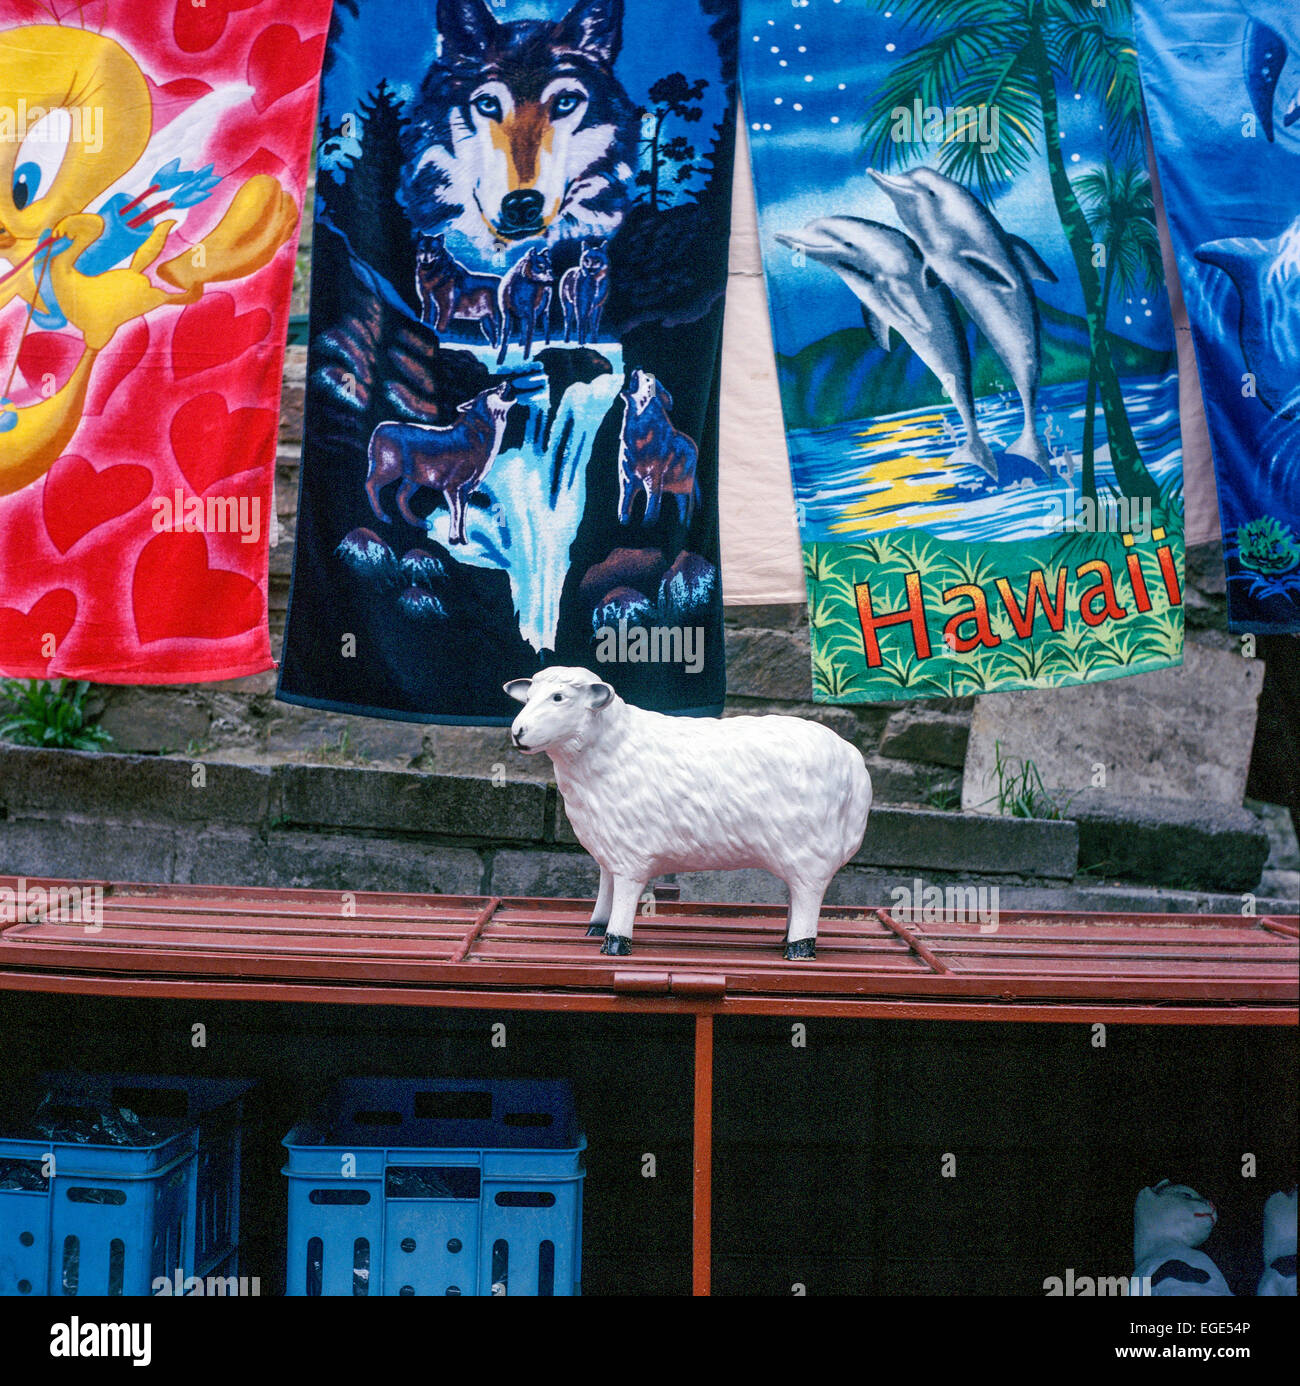 street selling things, towels, sheep - Stock Image